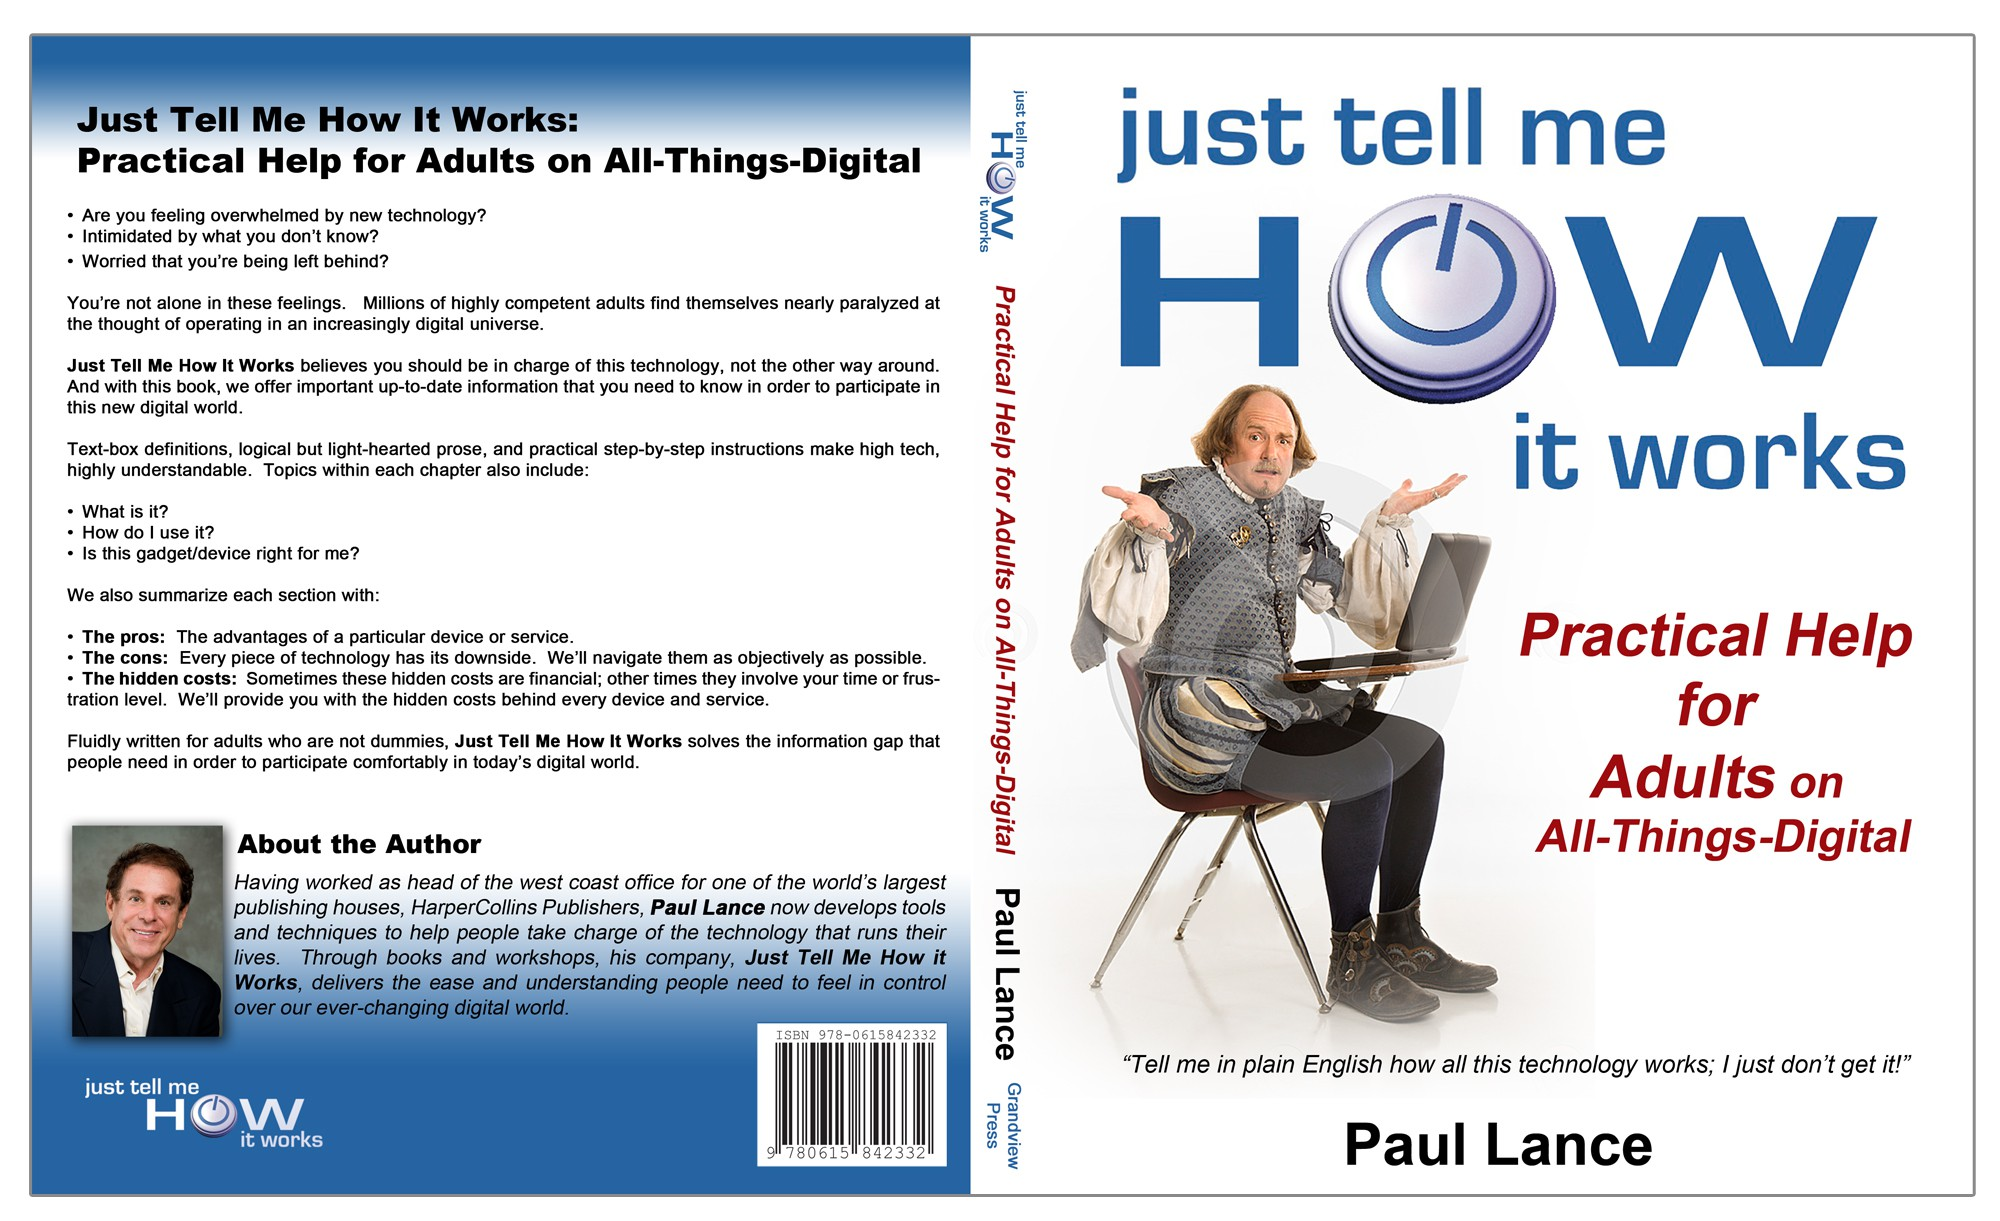 A book that will help your mom and dad feel comfortable about technology.  All it needs is a cover!